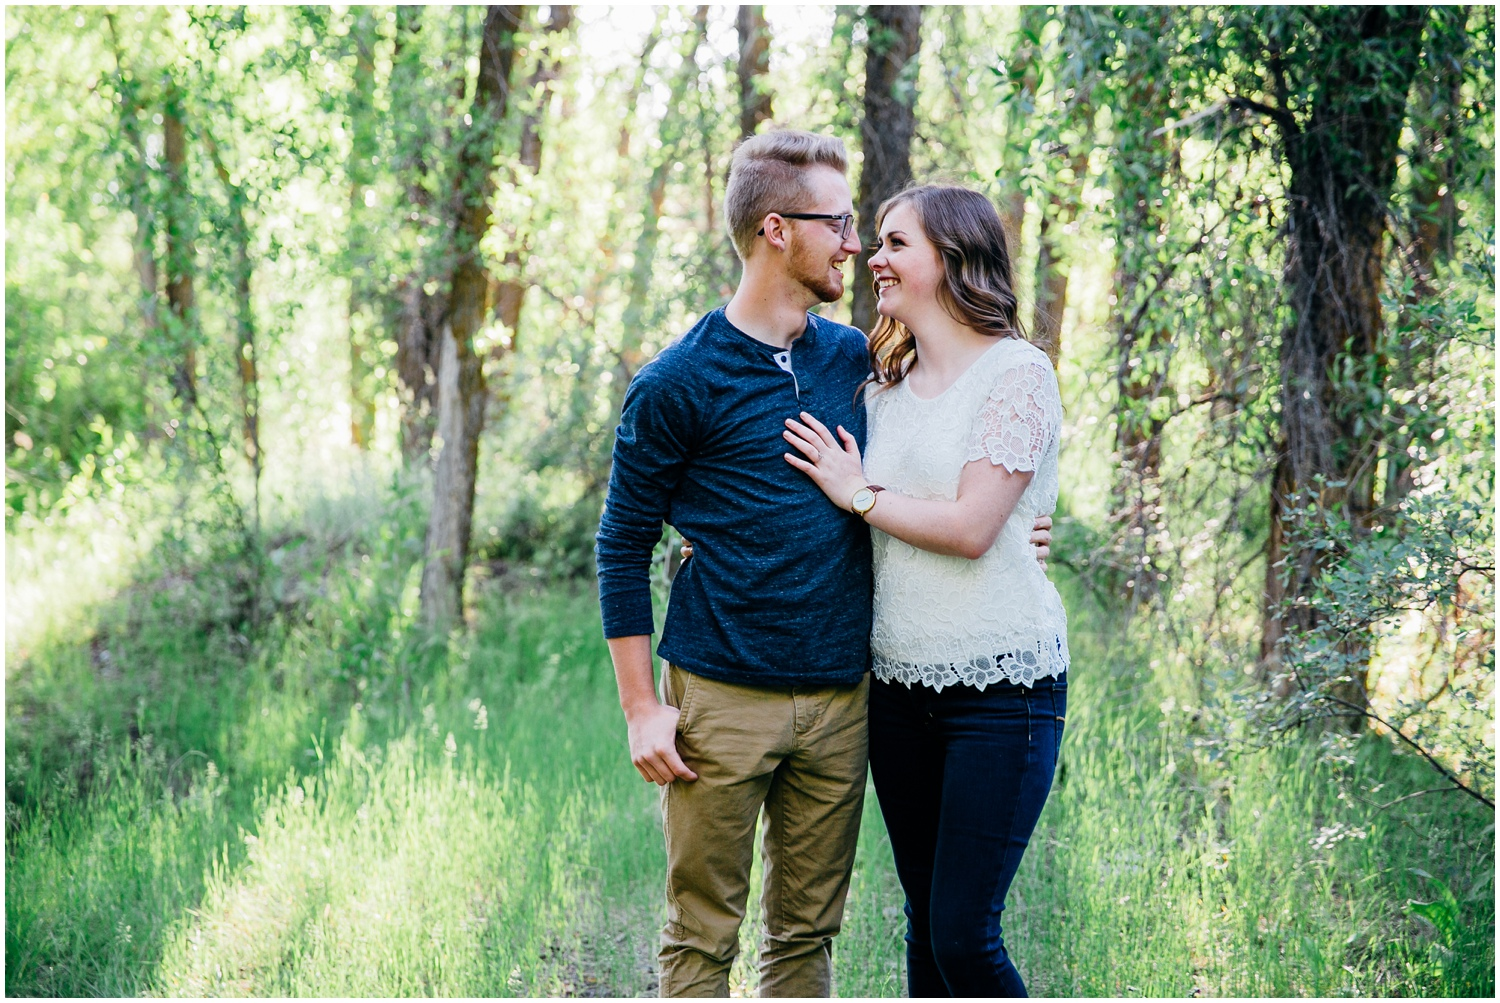 rigby-ririe-engagements-idaho-wyoming-wedding-photographer_1340.jpg